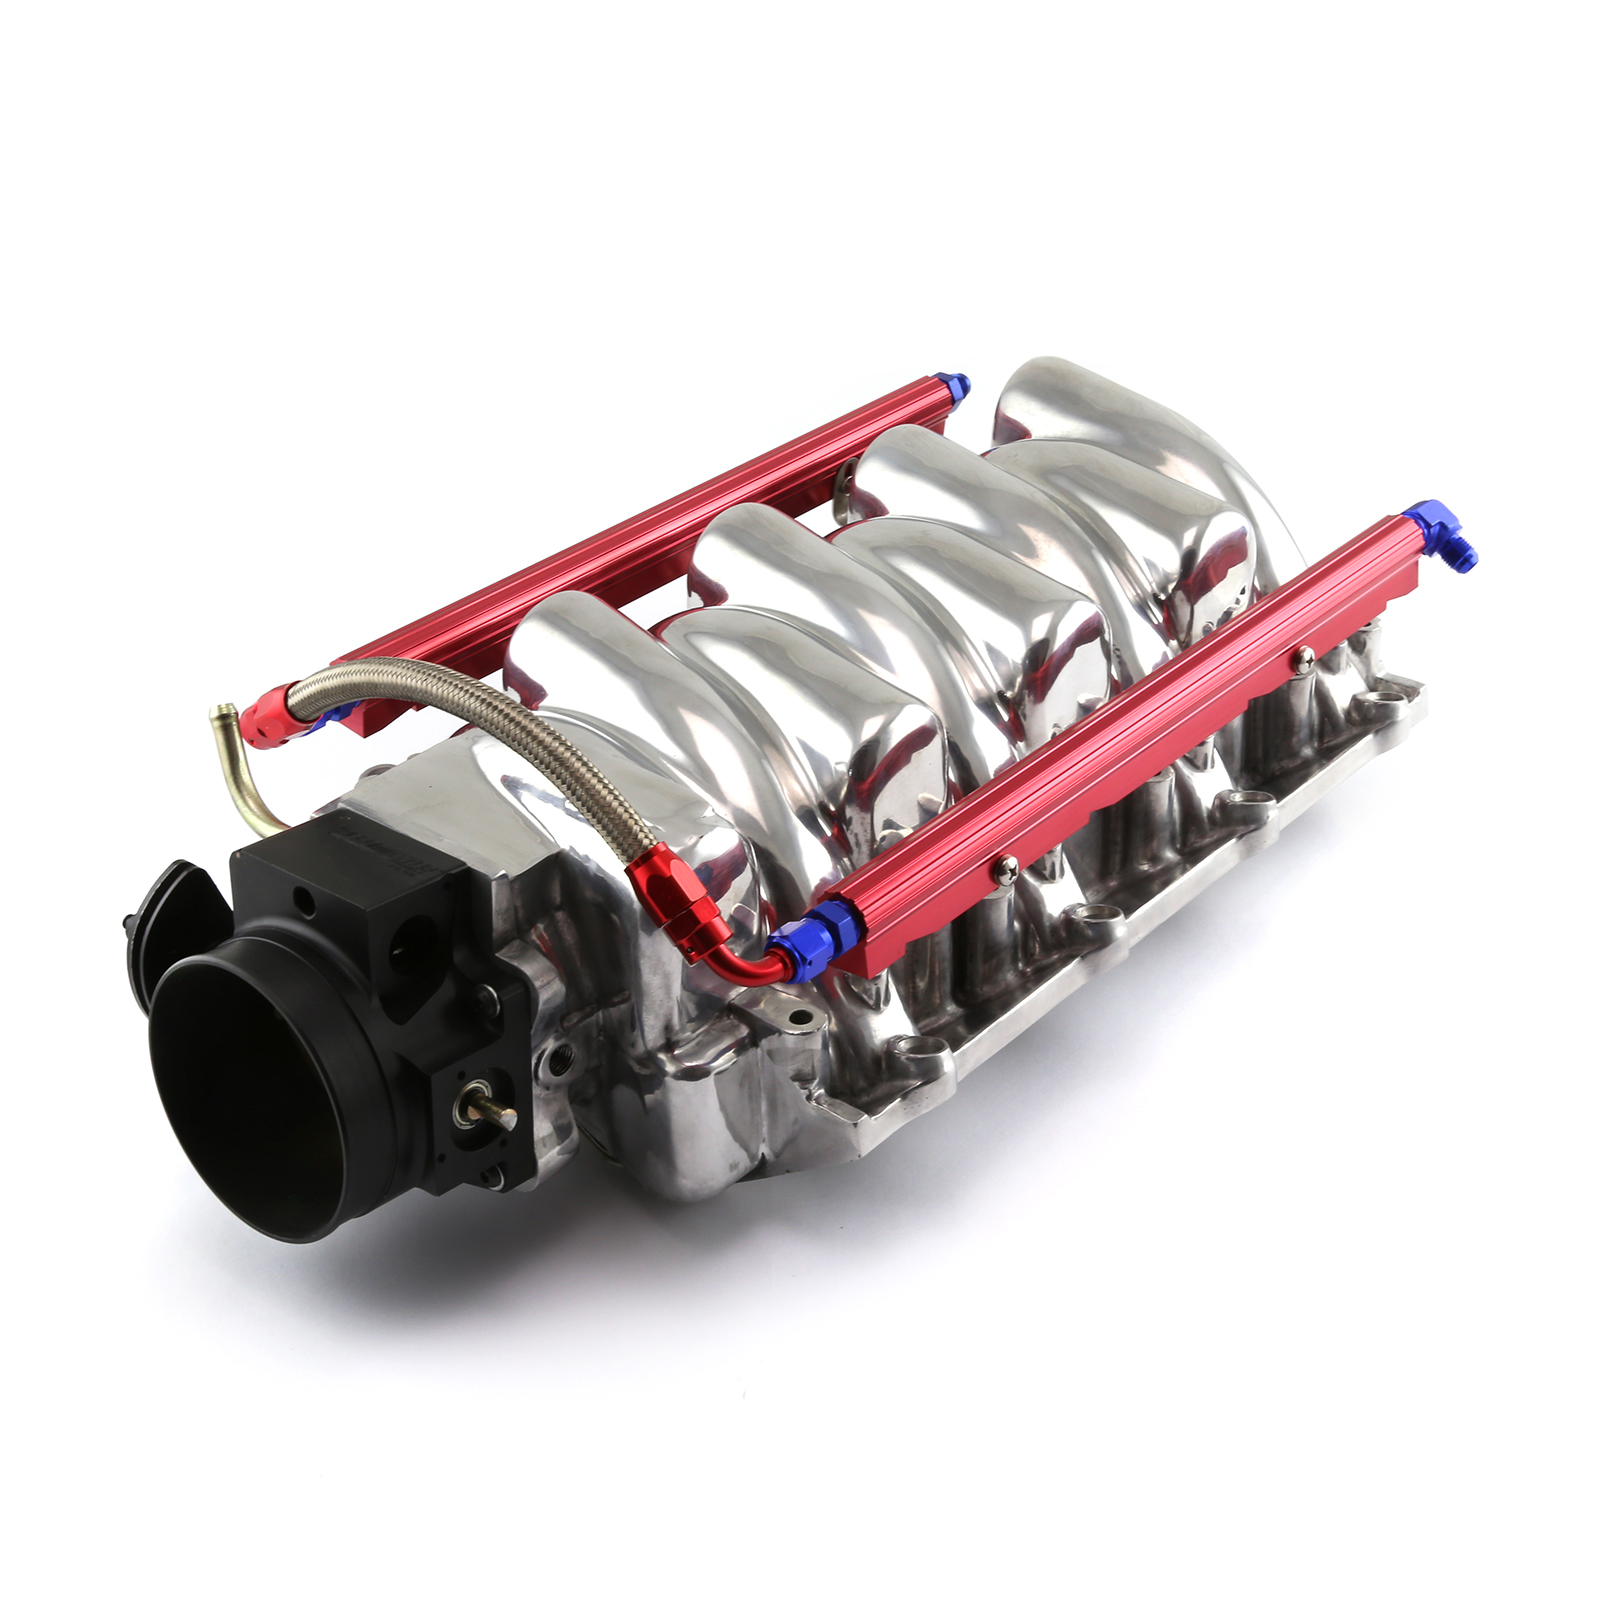 Chevy LS2 Polished Aluminum Intake Manifold With 90mm